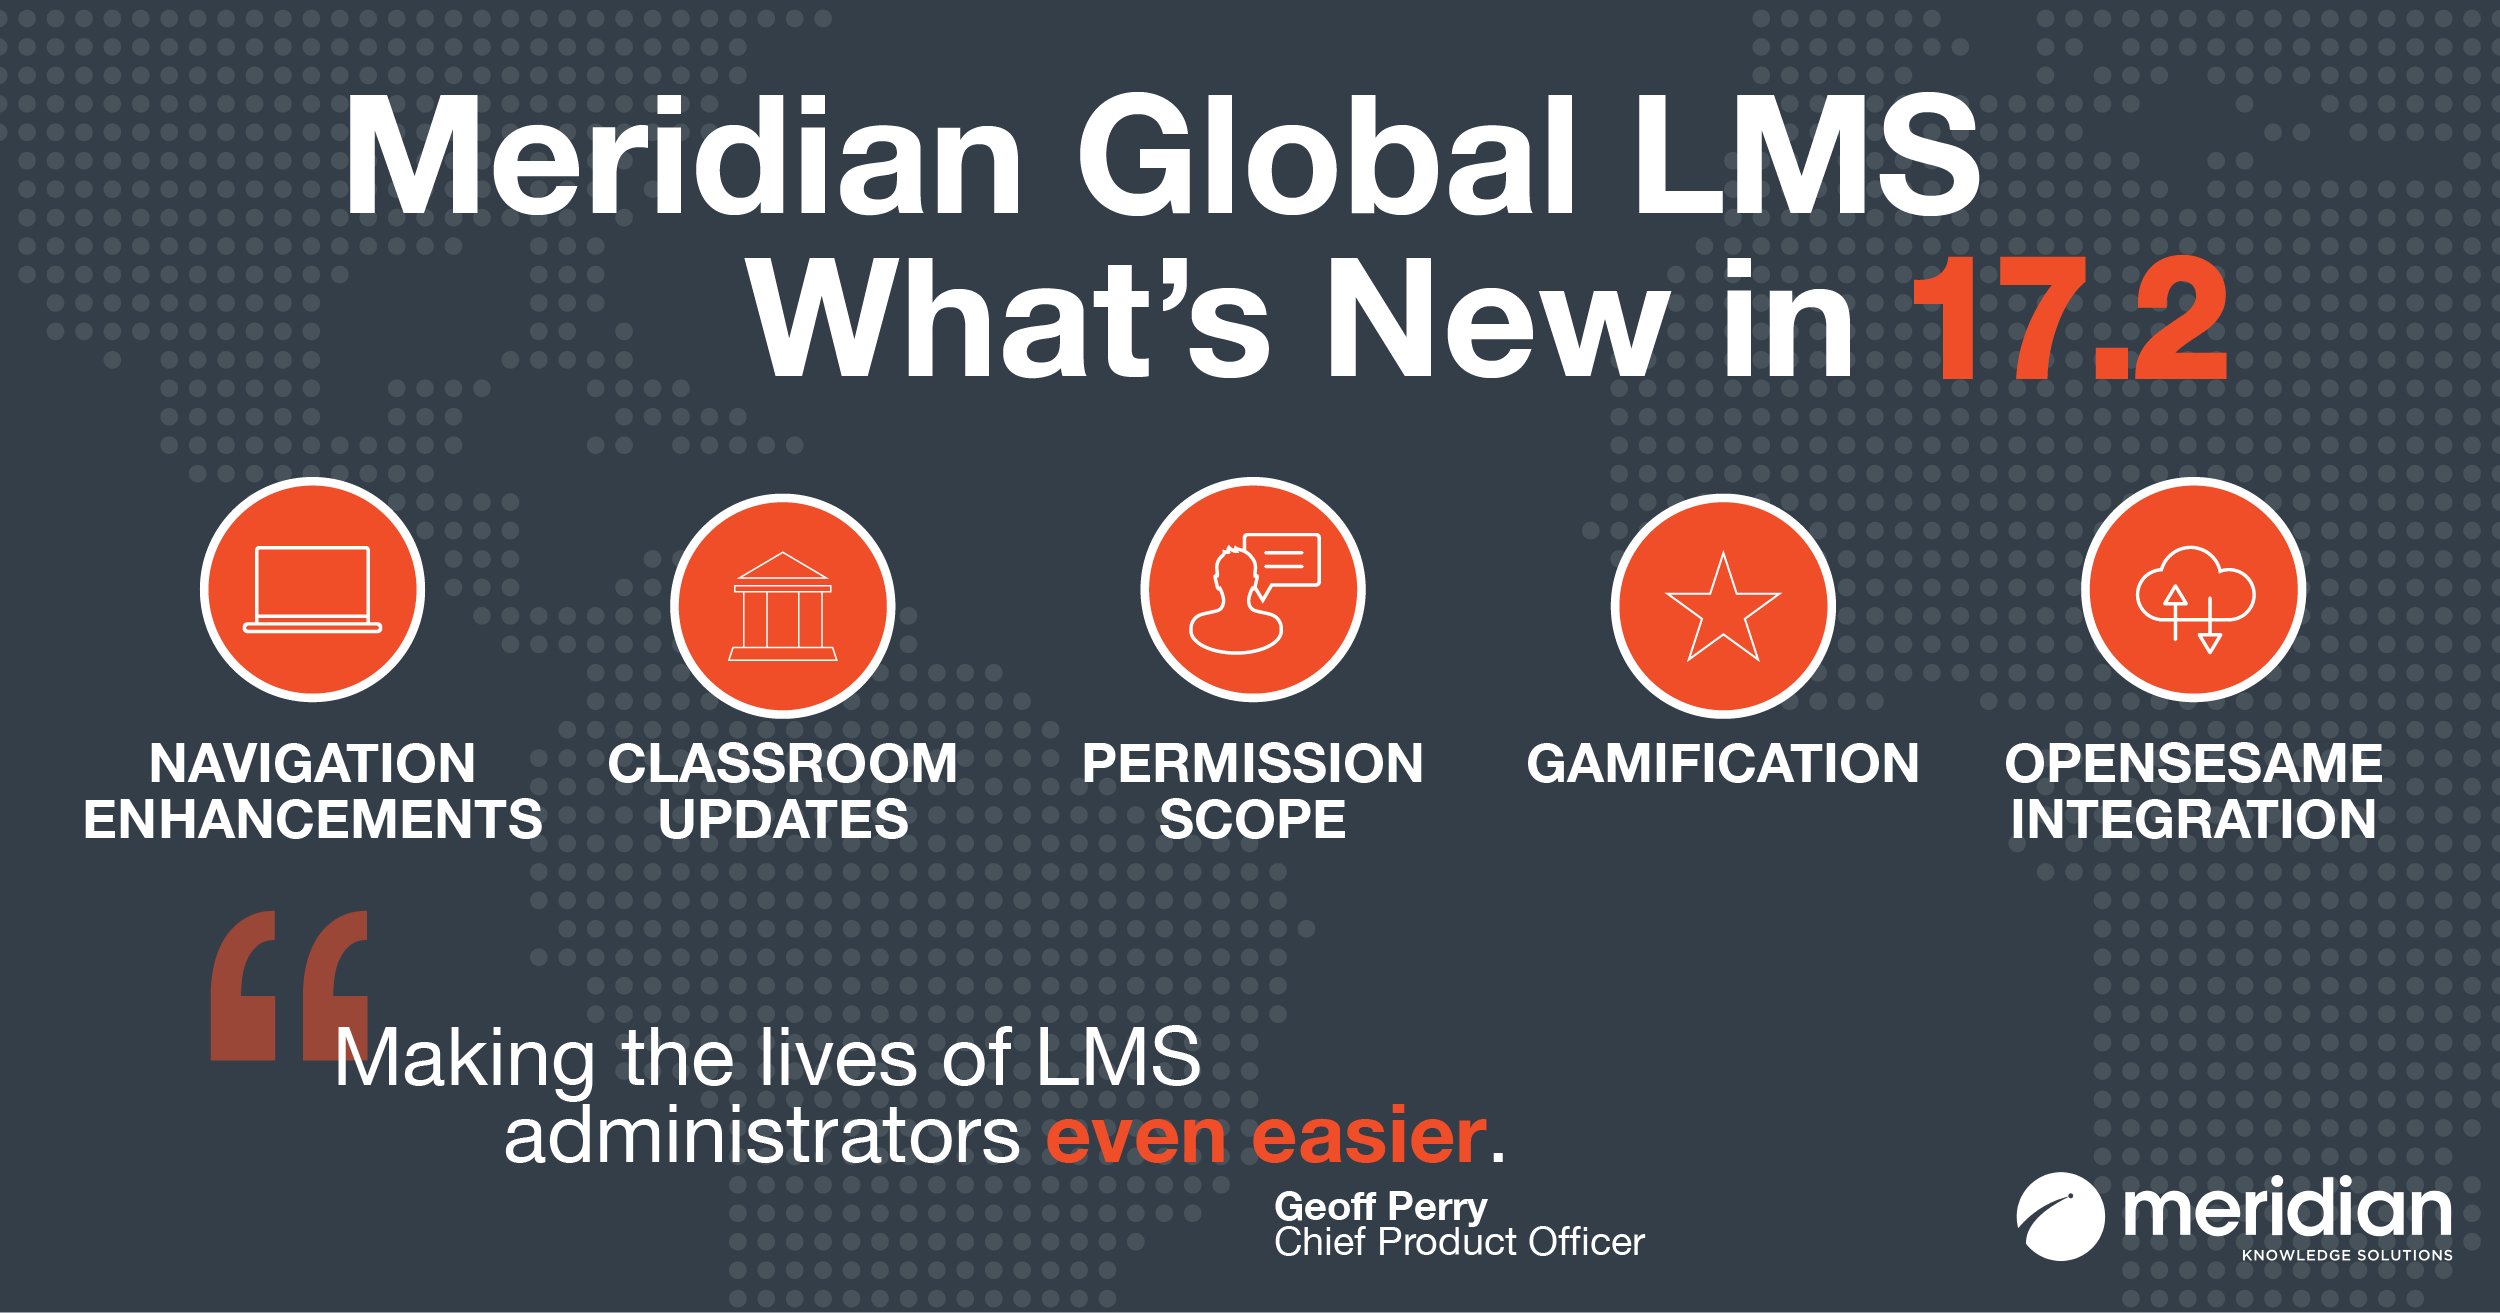 What's New in Meridian Global LMS 17.2